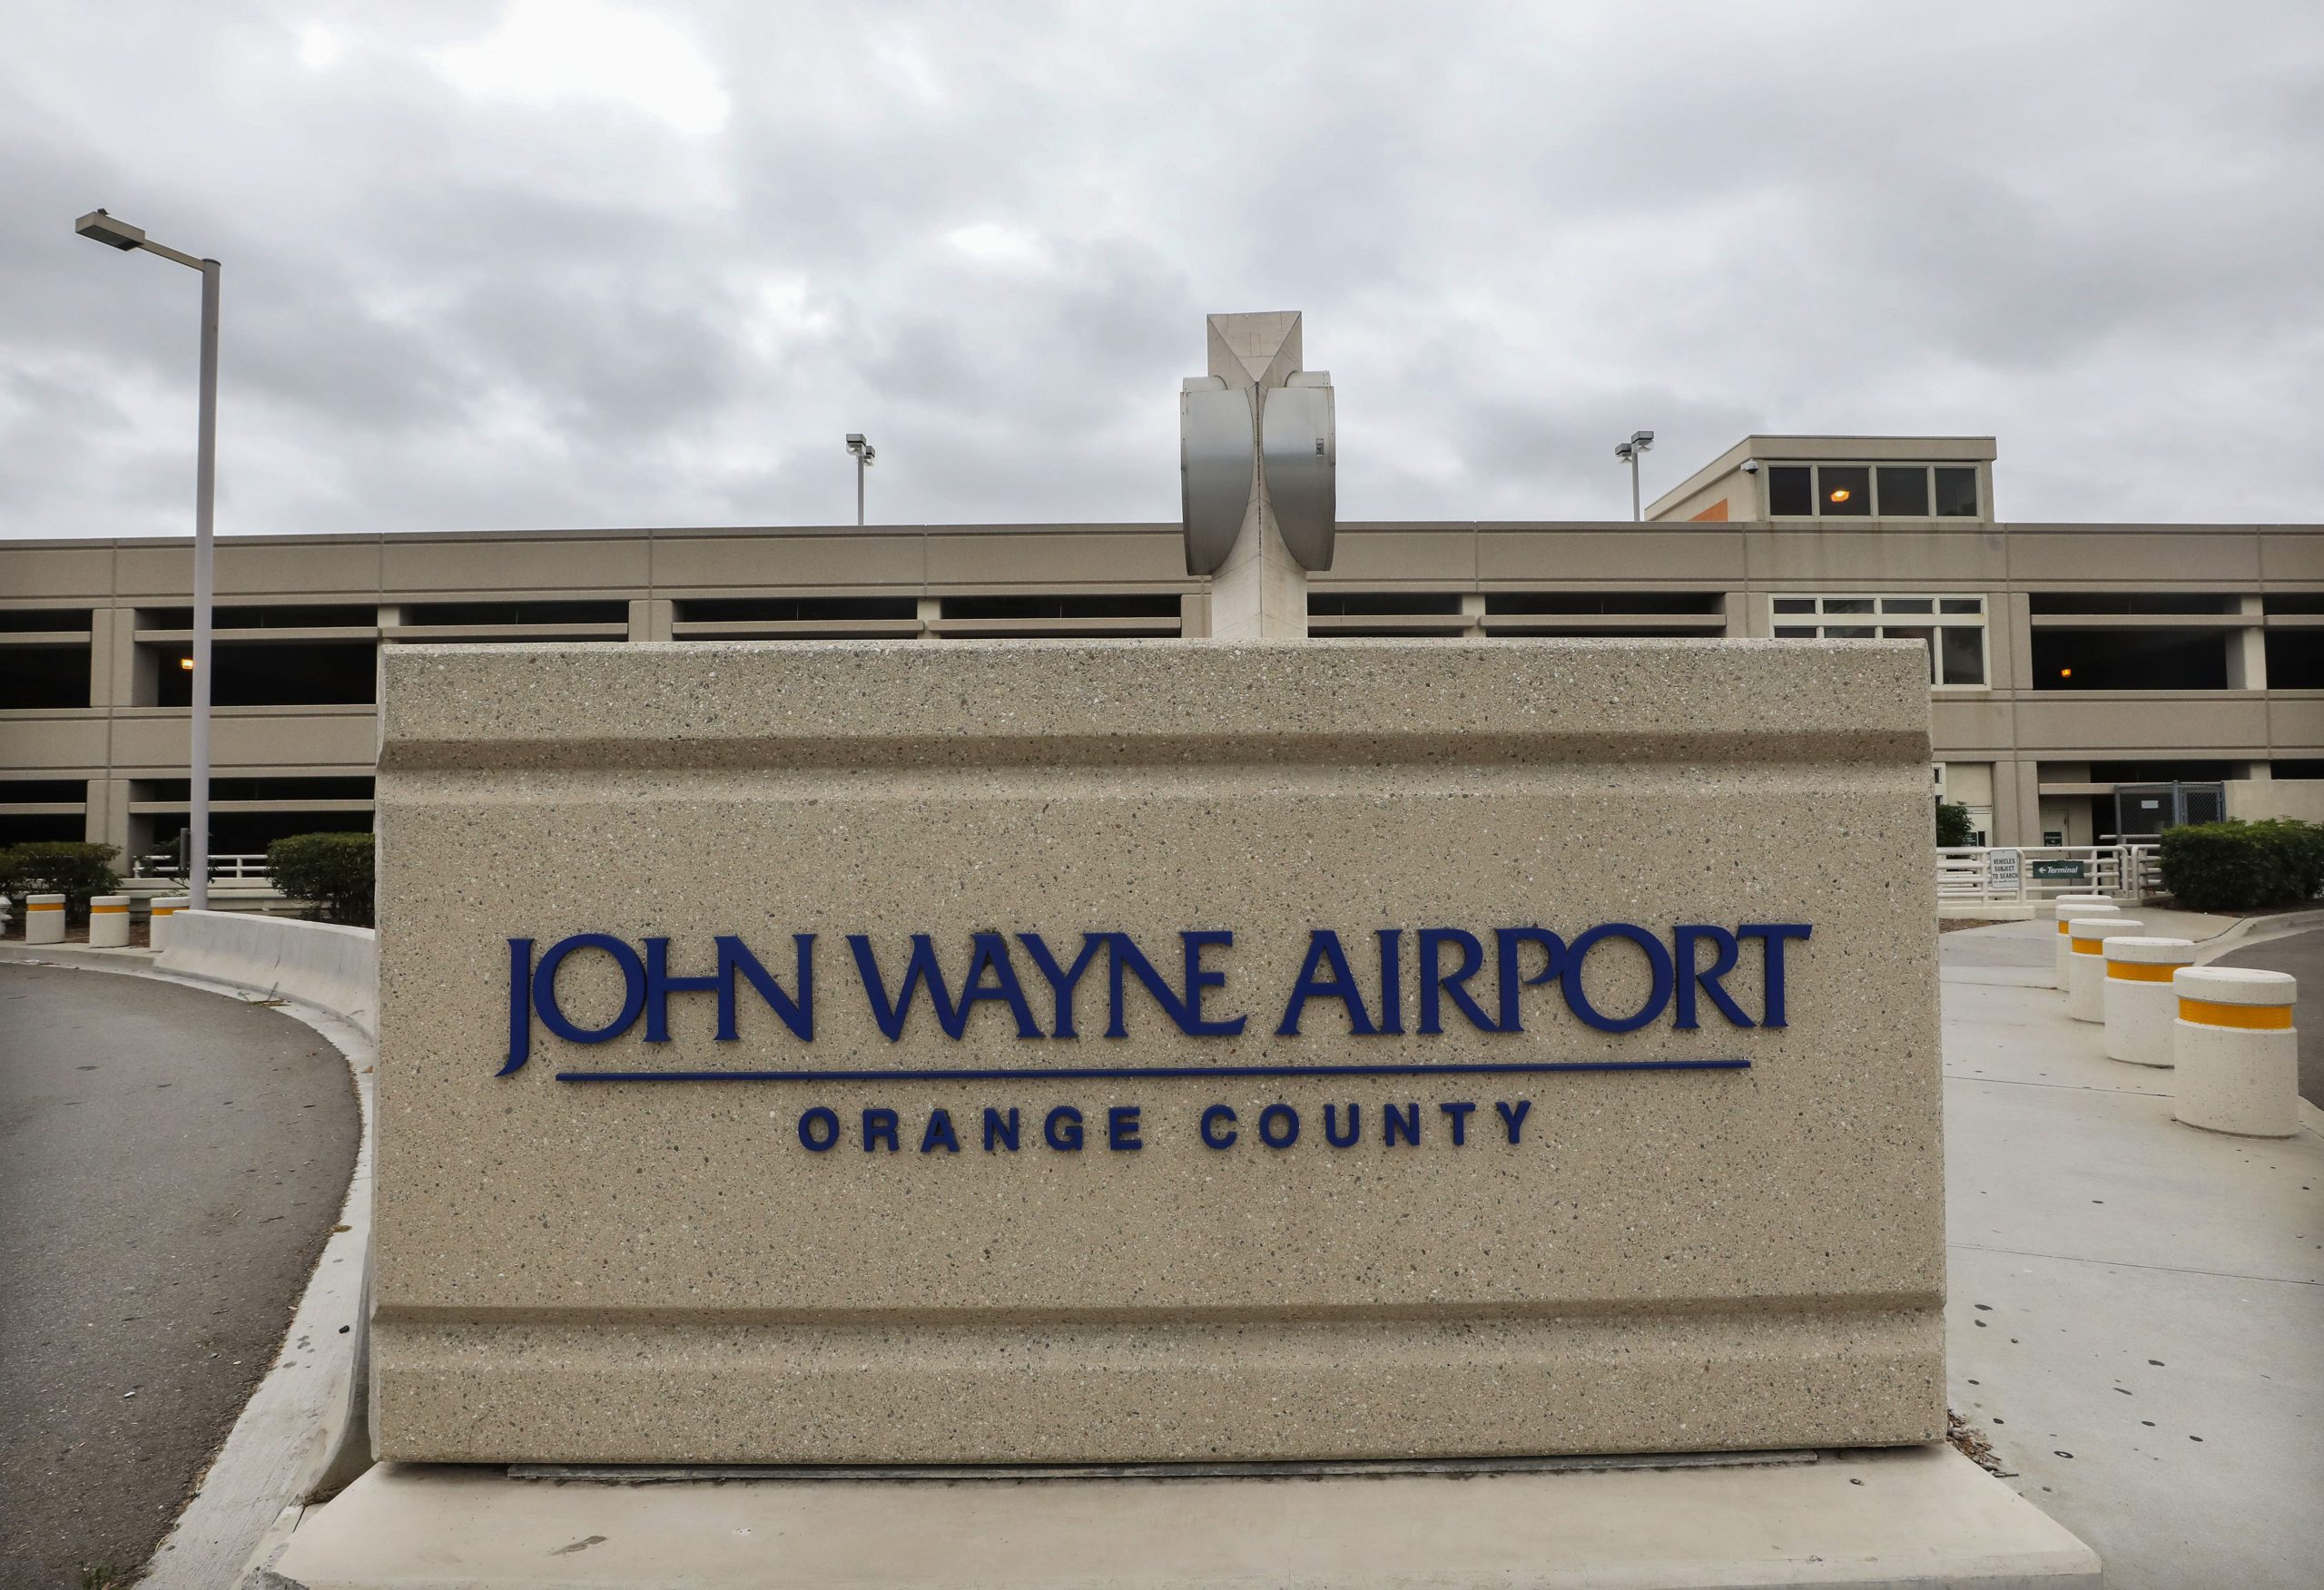 Democrats are calling for the name of John Wayne airport to be changed and the statue to be removed due to the deceased actor's 'racist and bigoted statements'.